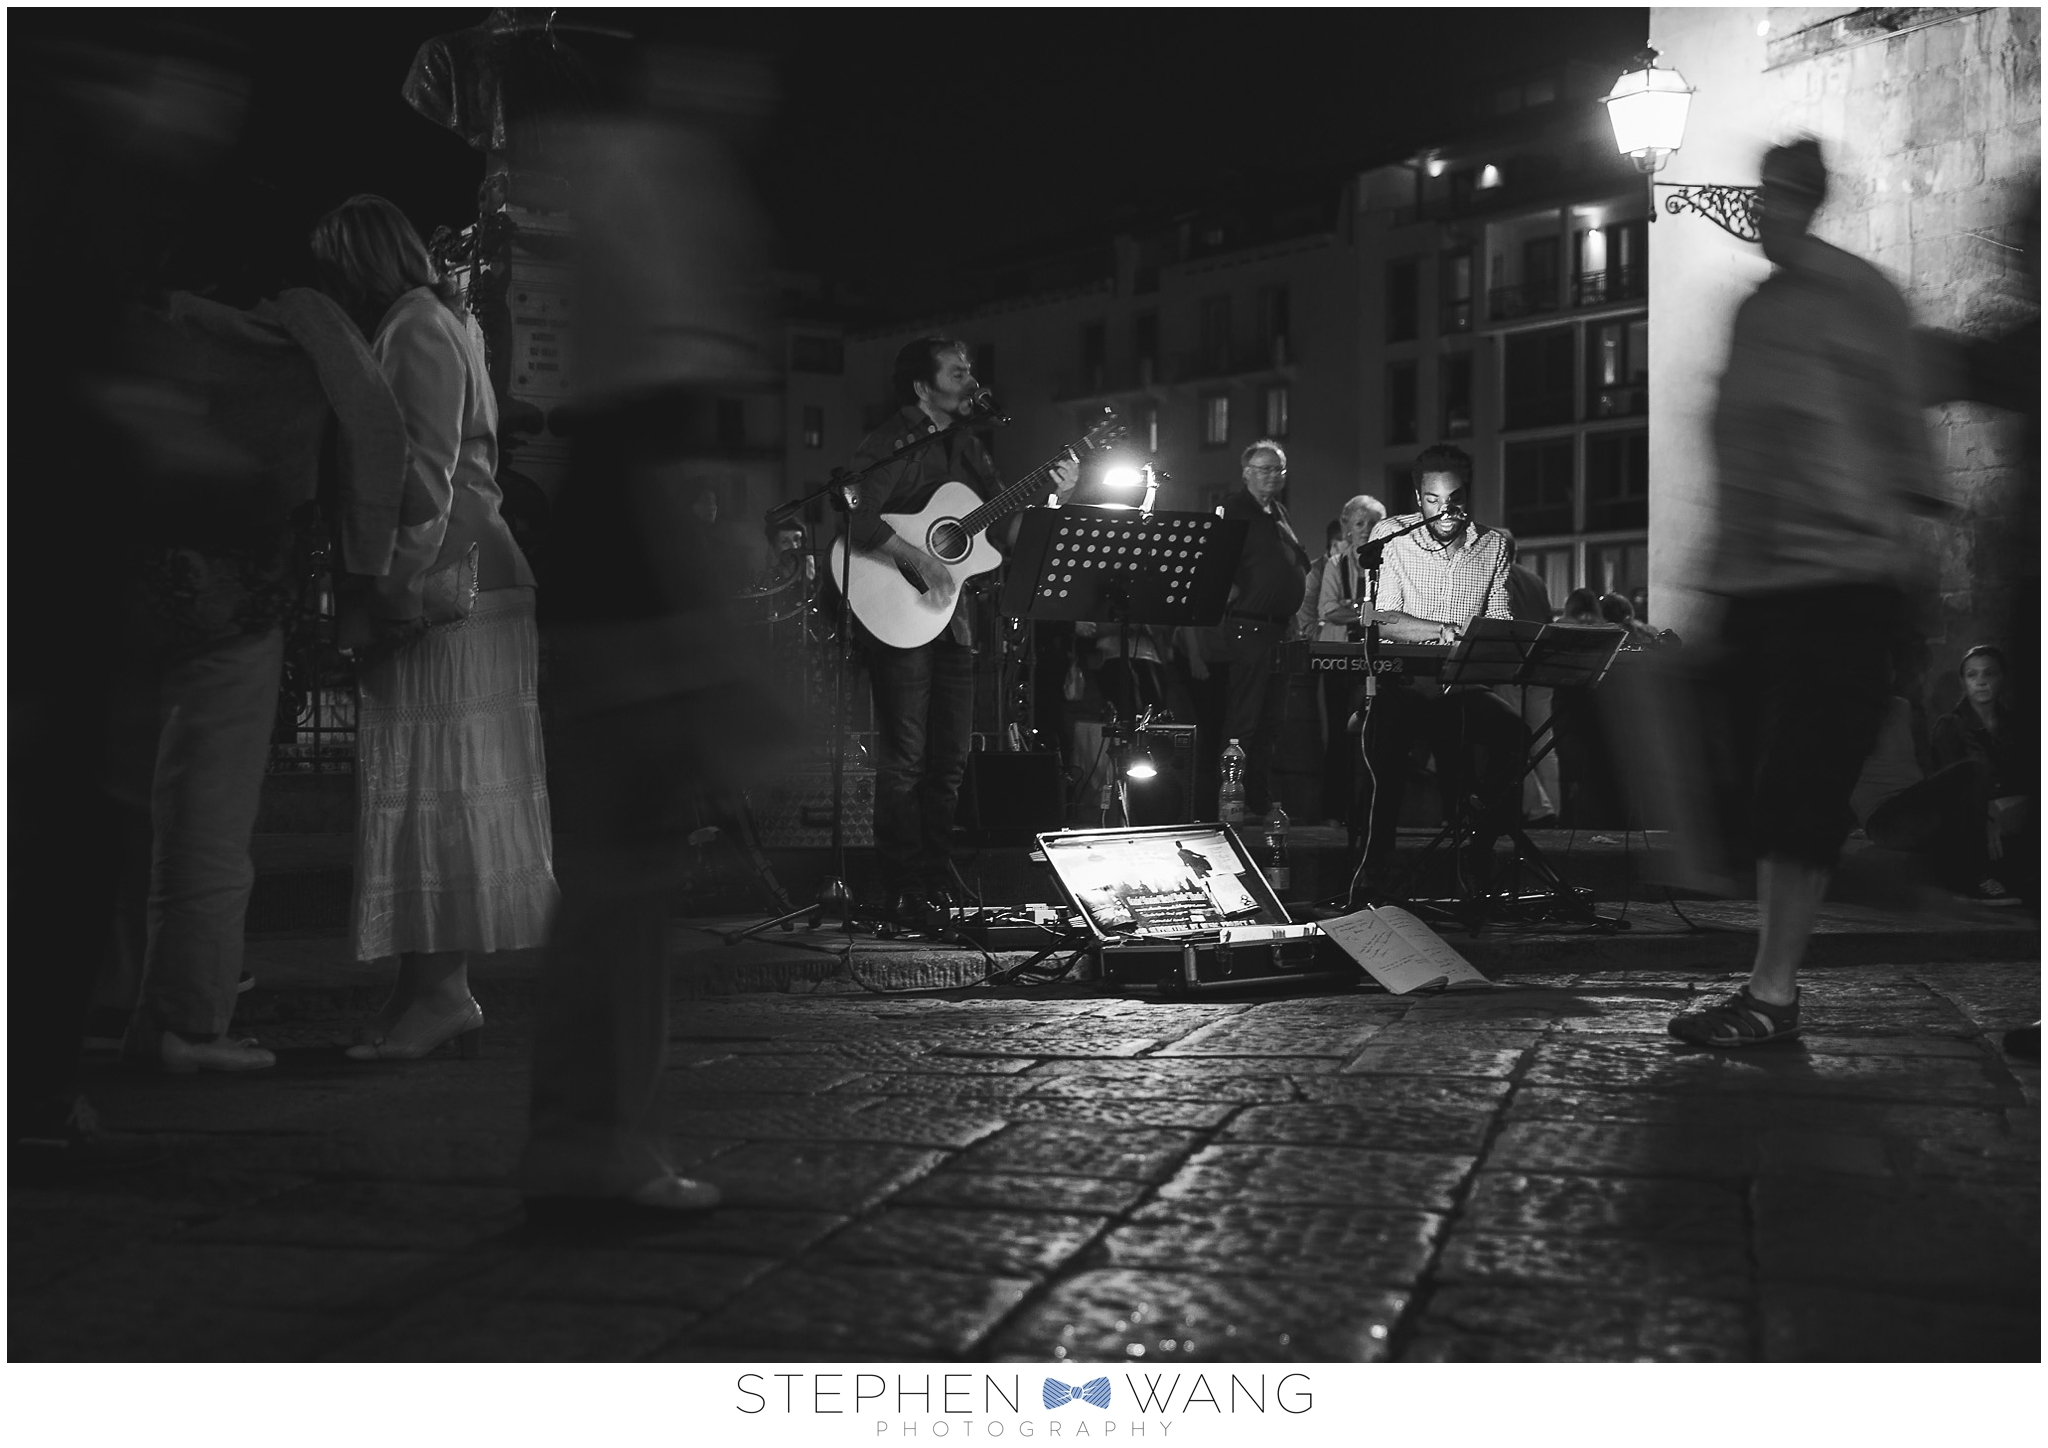 We sat and enjoyed some local musicians on the Ponte Vecchio for a while on our way back from exploring the city.